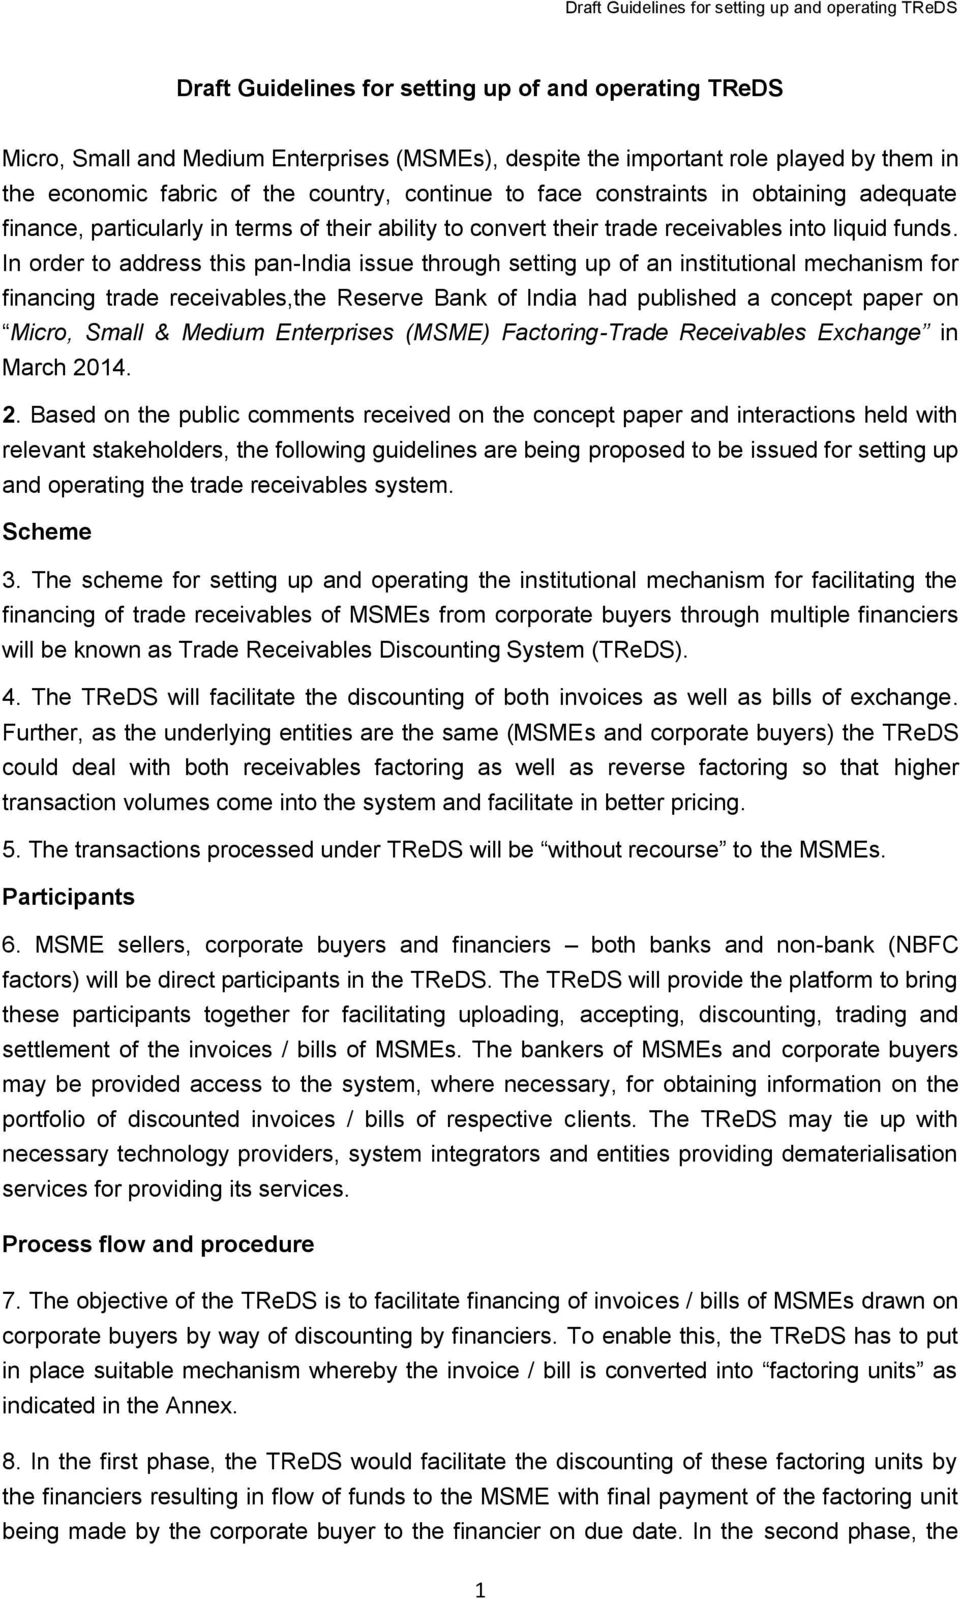 In order to address this pan-india issue through setting up of an institutional mechanism for financing trade receivables,the Reserve Bank of India had published a concept paper on Micro, Small &